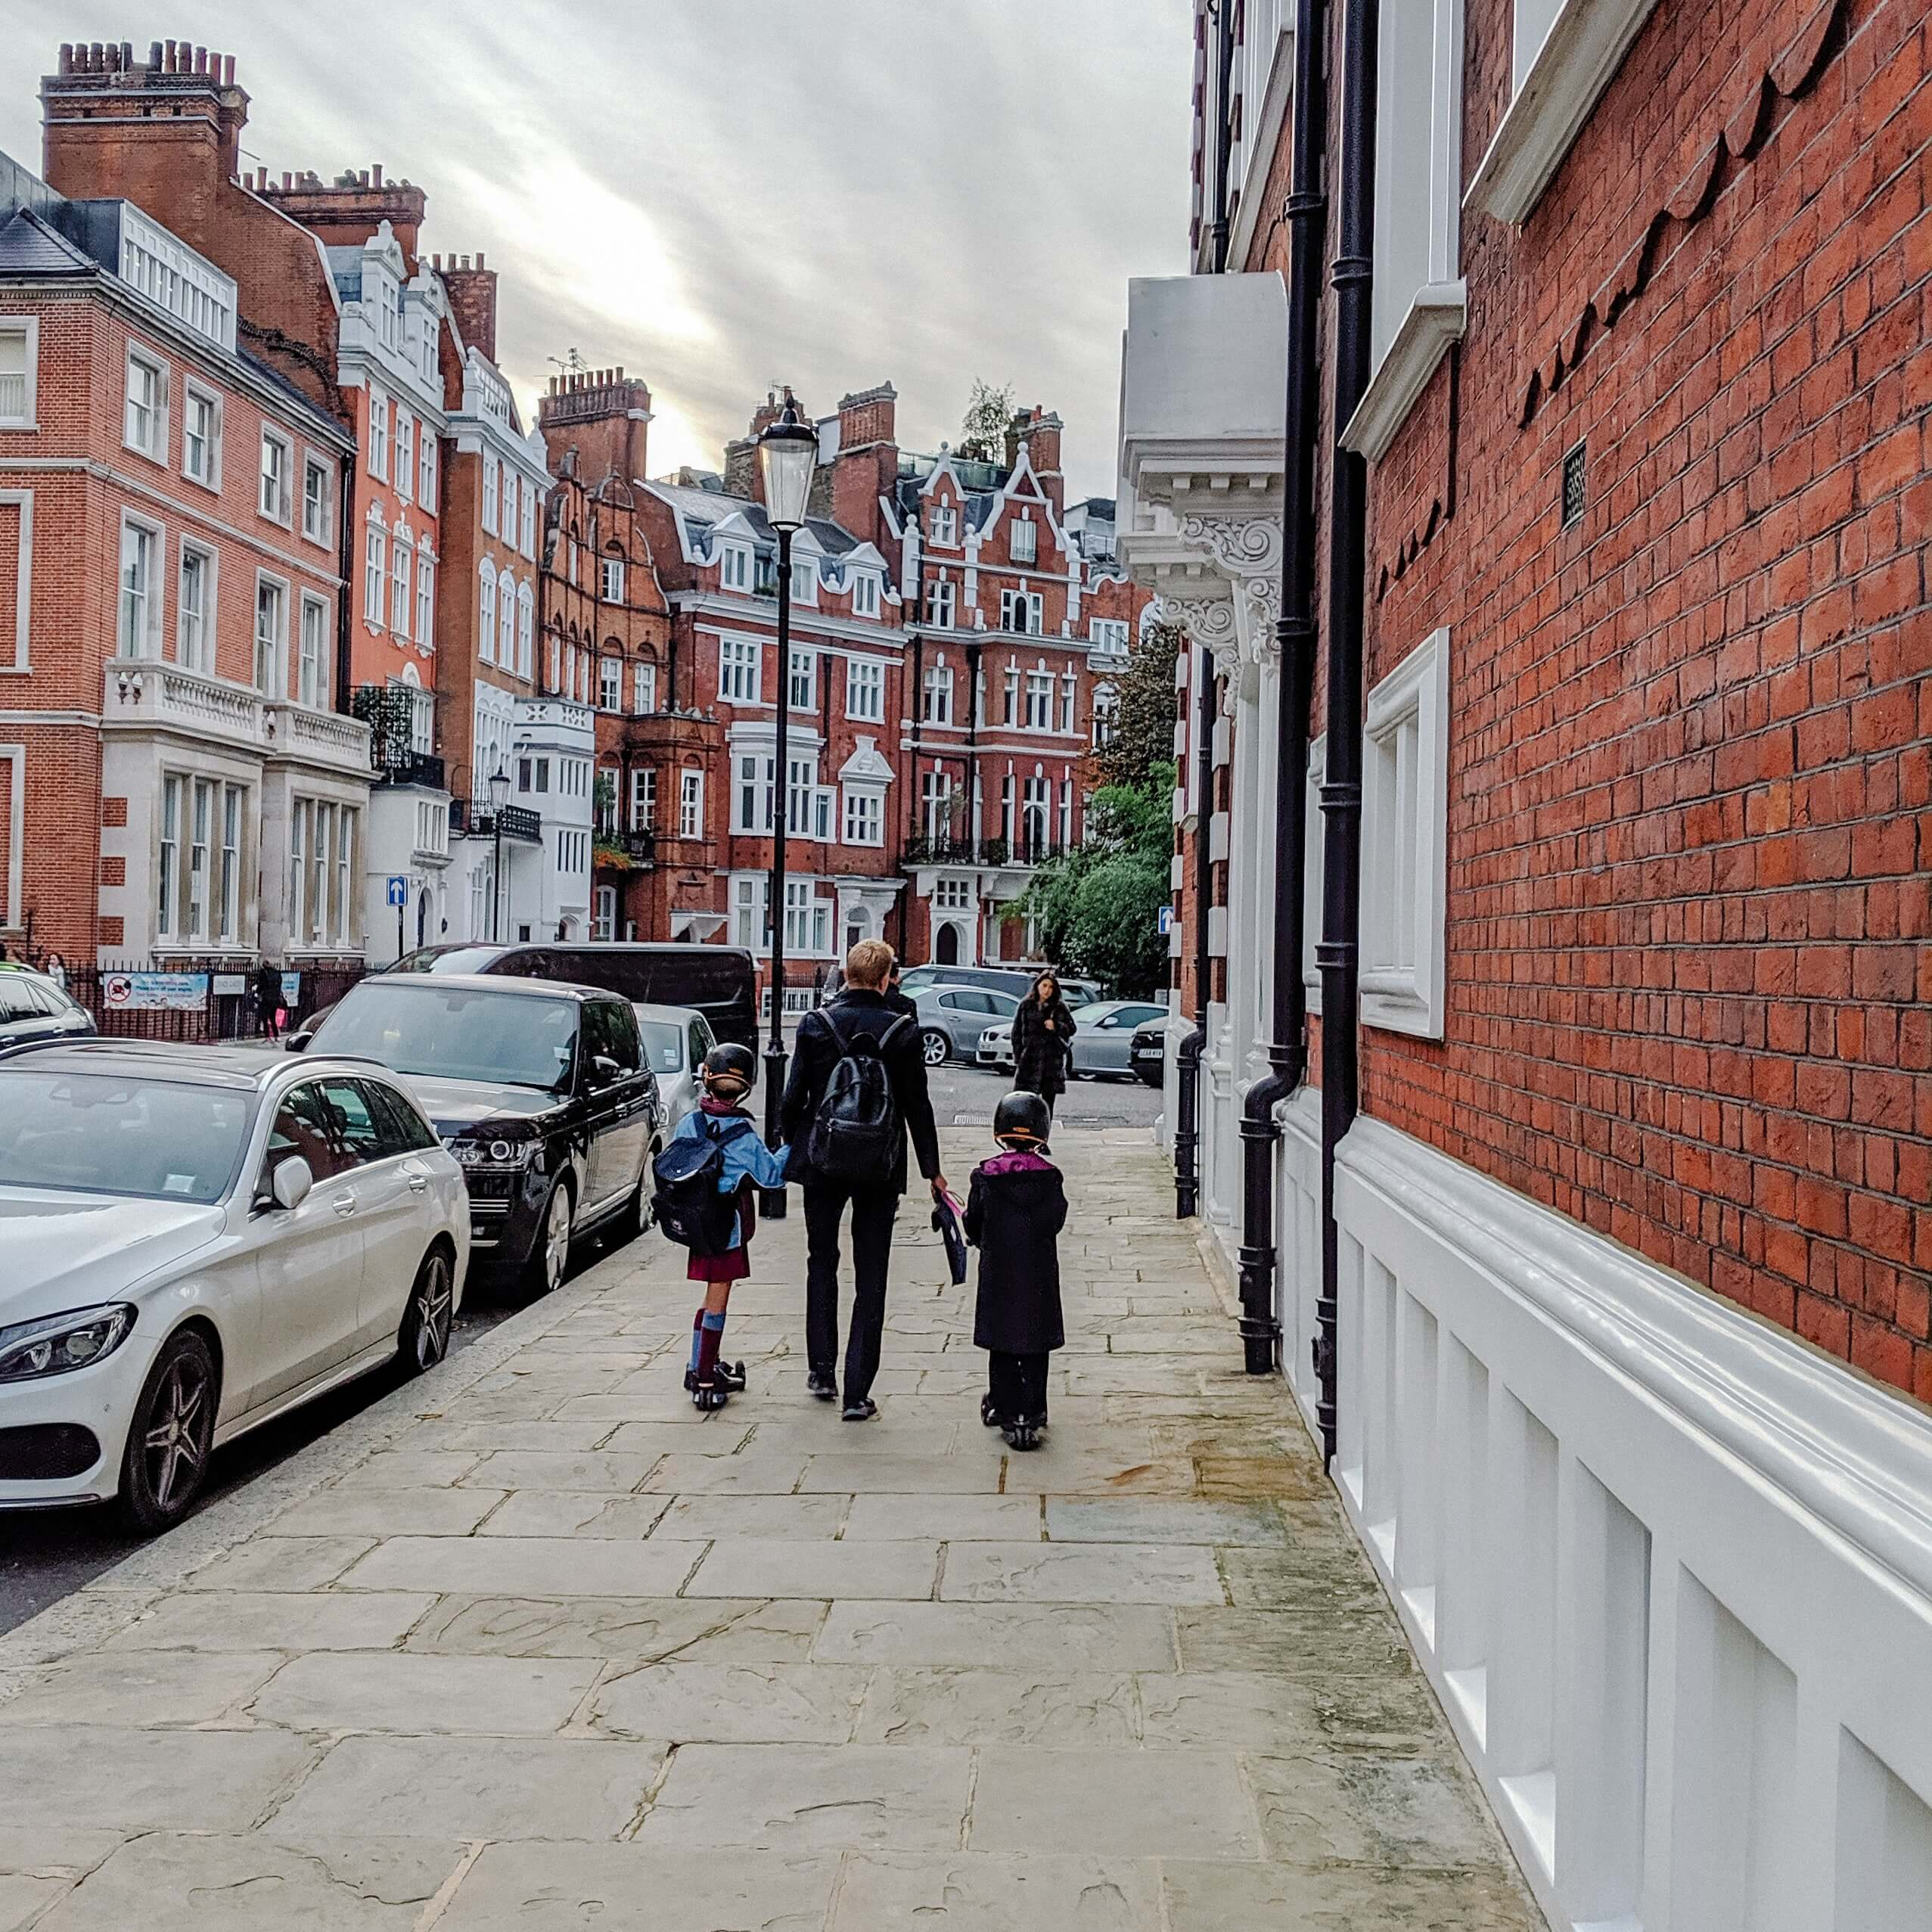 father with two children walking along UK pavement with cars parked on the road and female pedestrian walking towards them